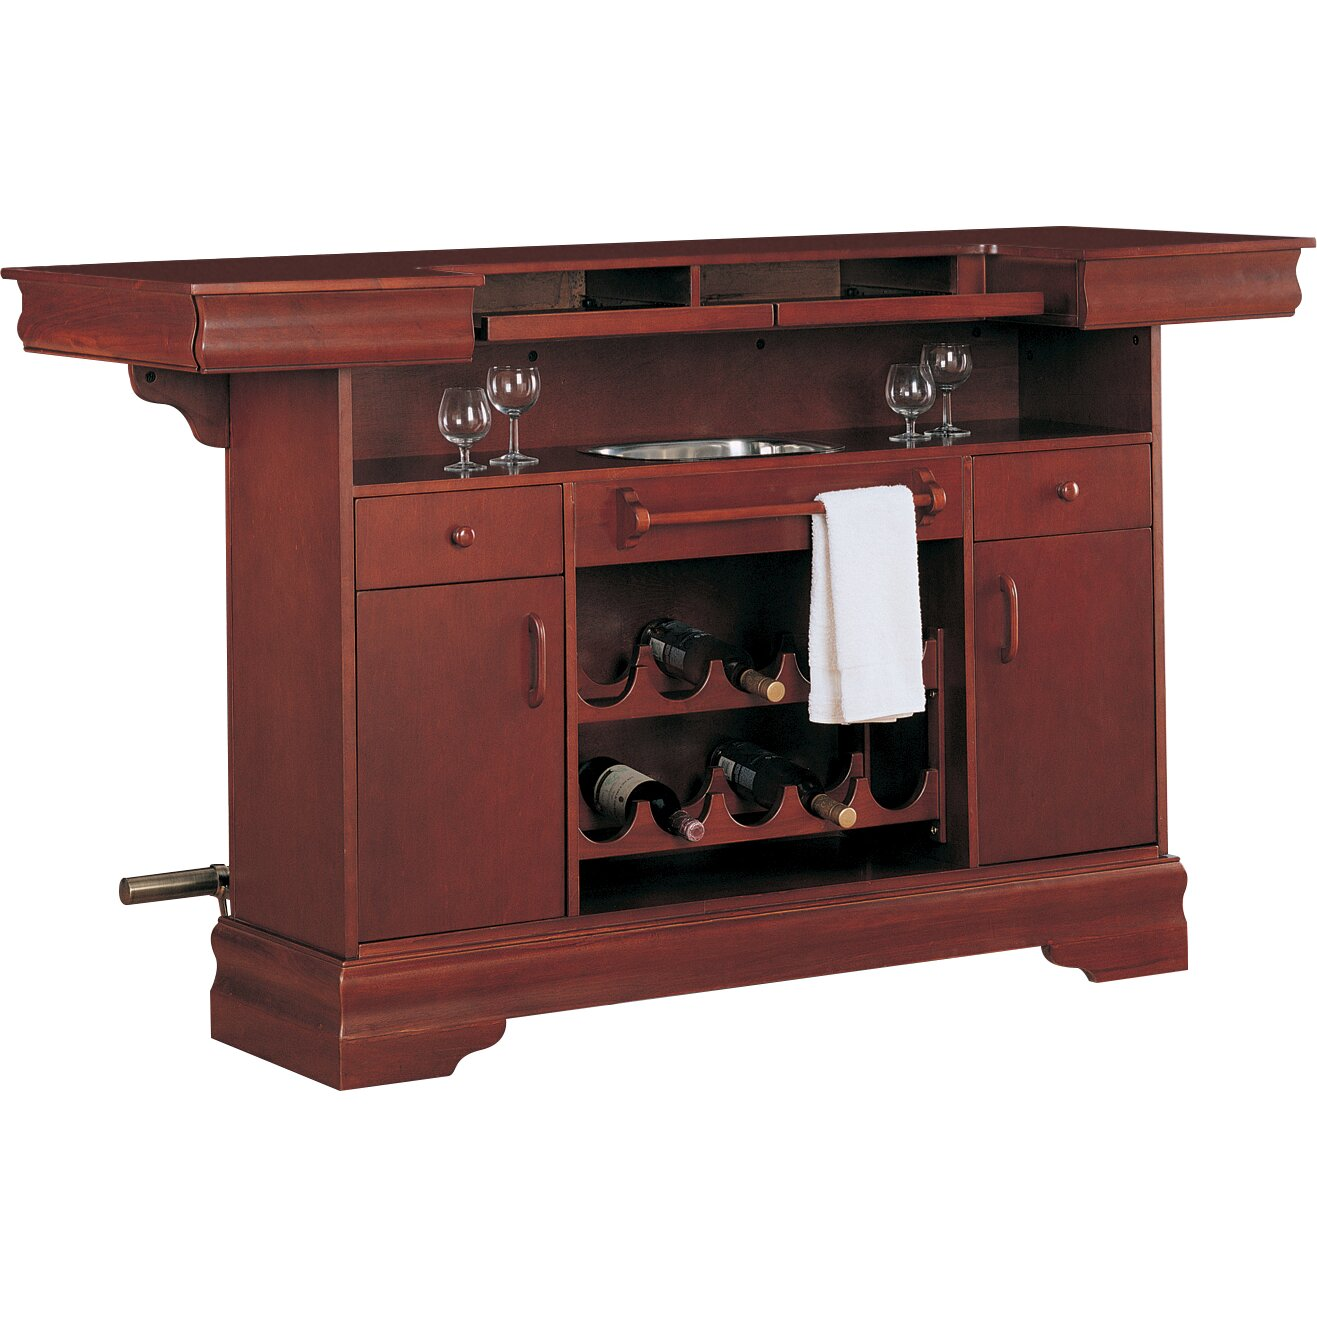 Darby Home Co Shumaker Home Bar Reviews Wayfair